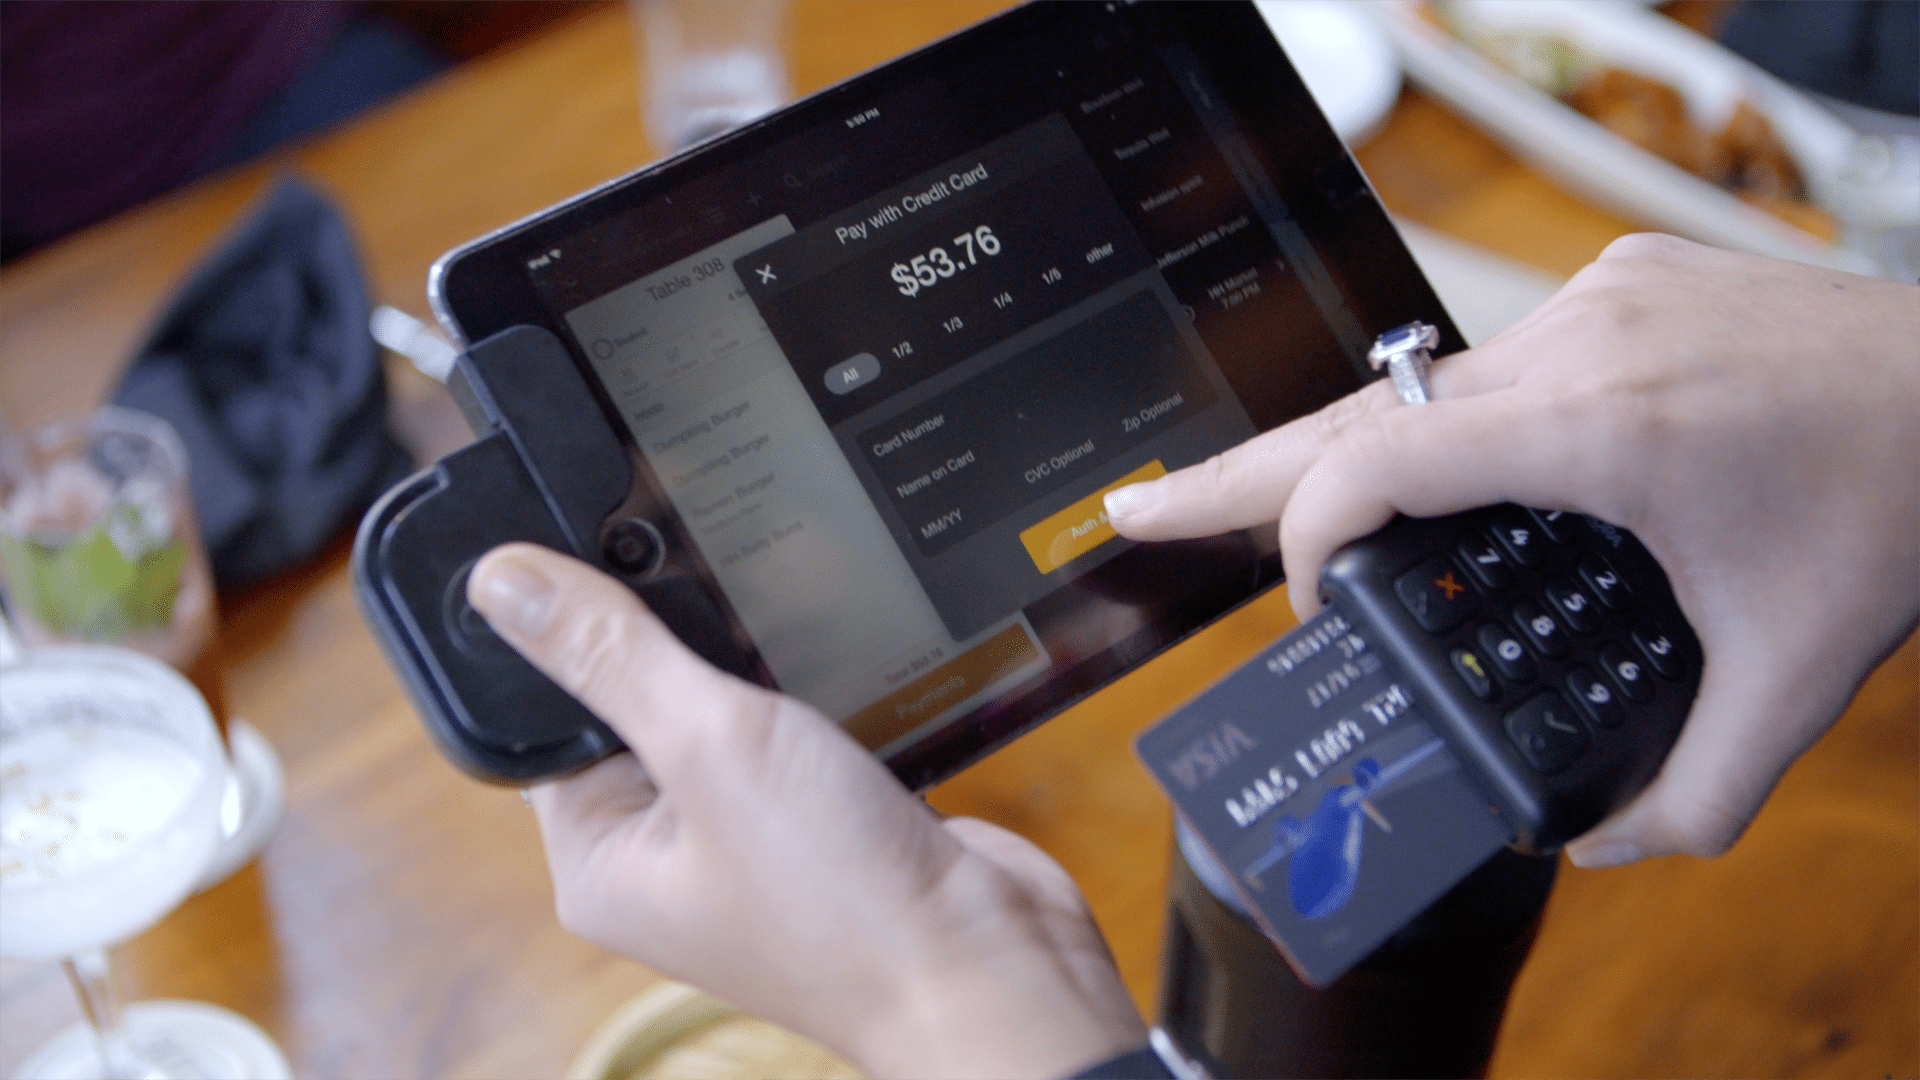 Smart ideas about using your new POS device properly